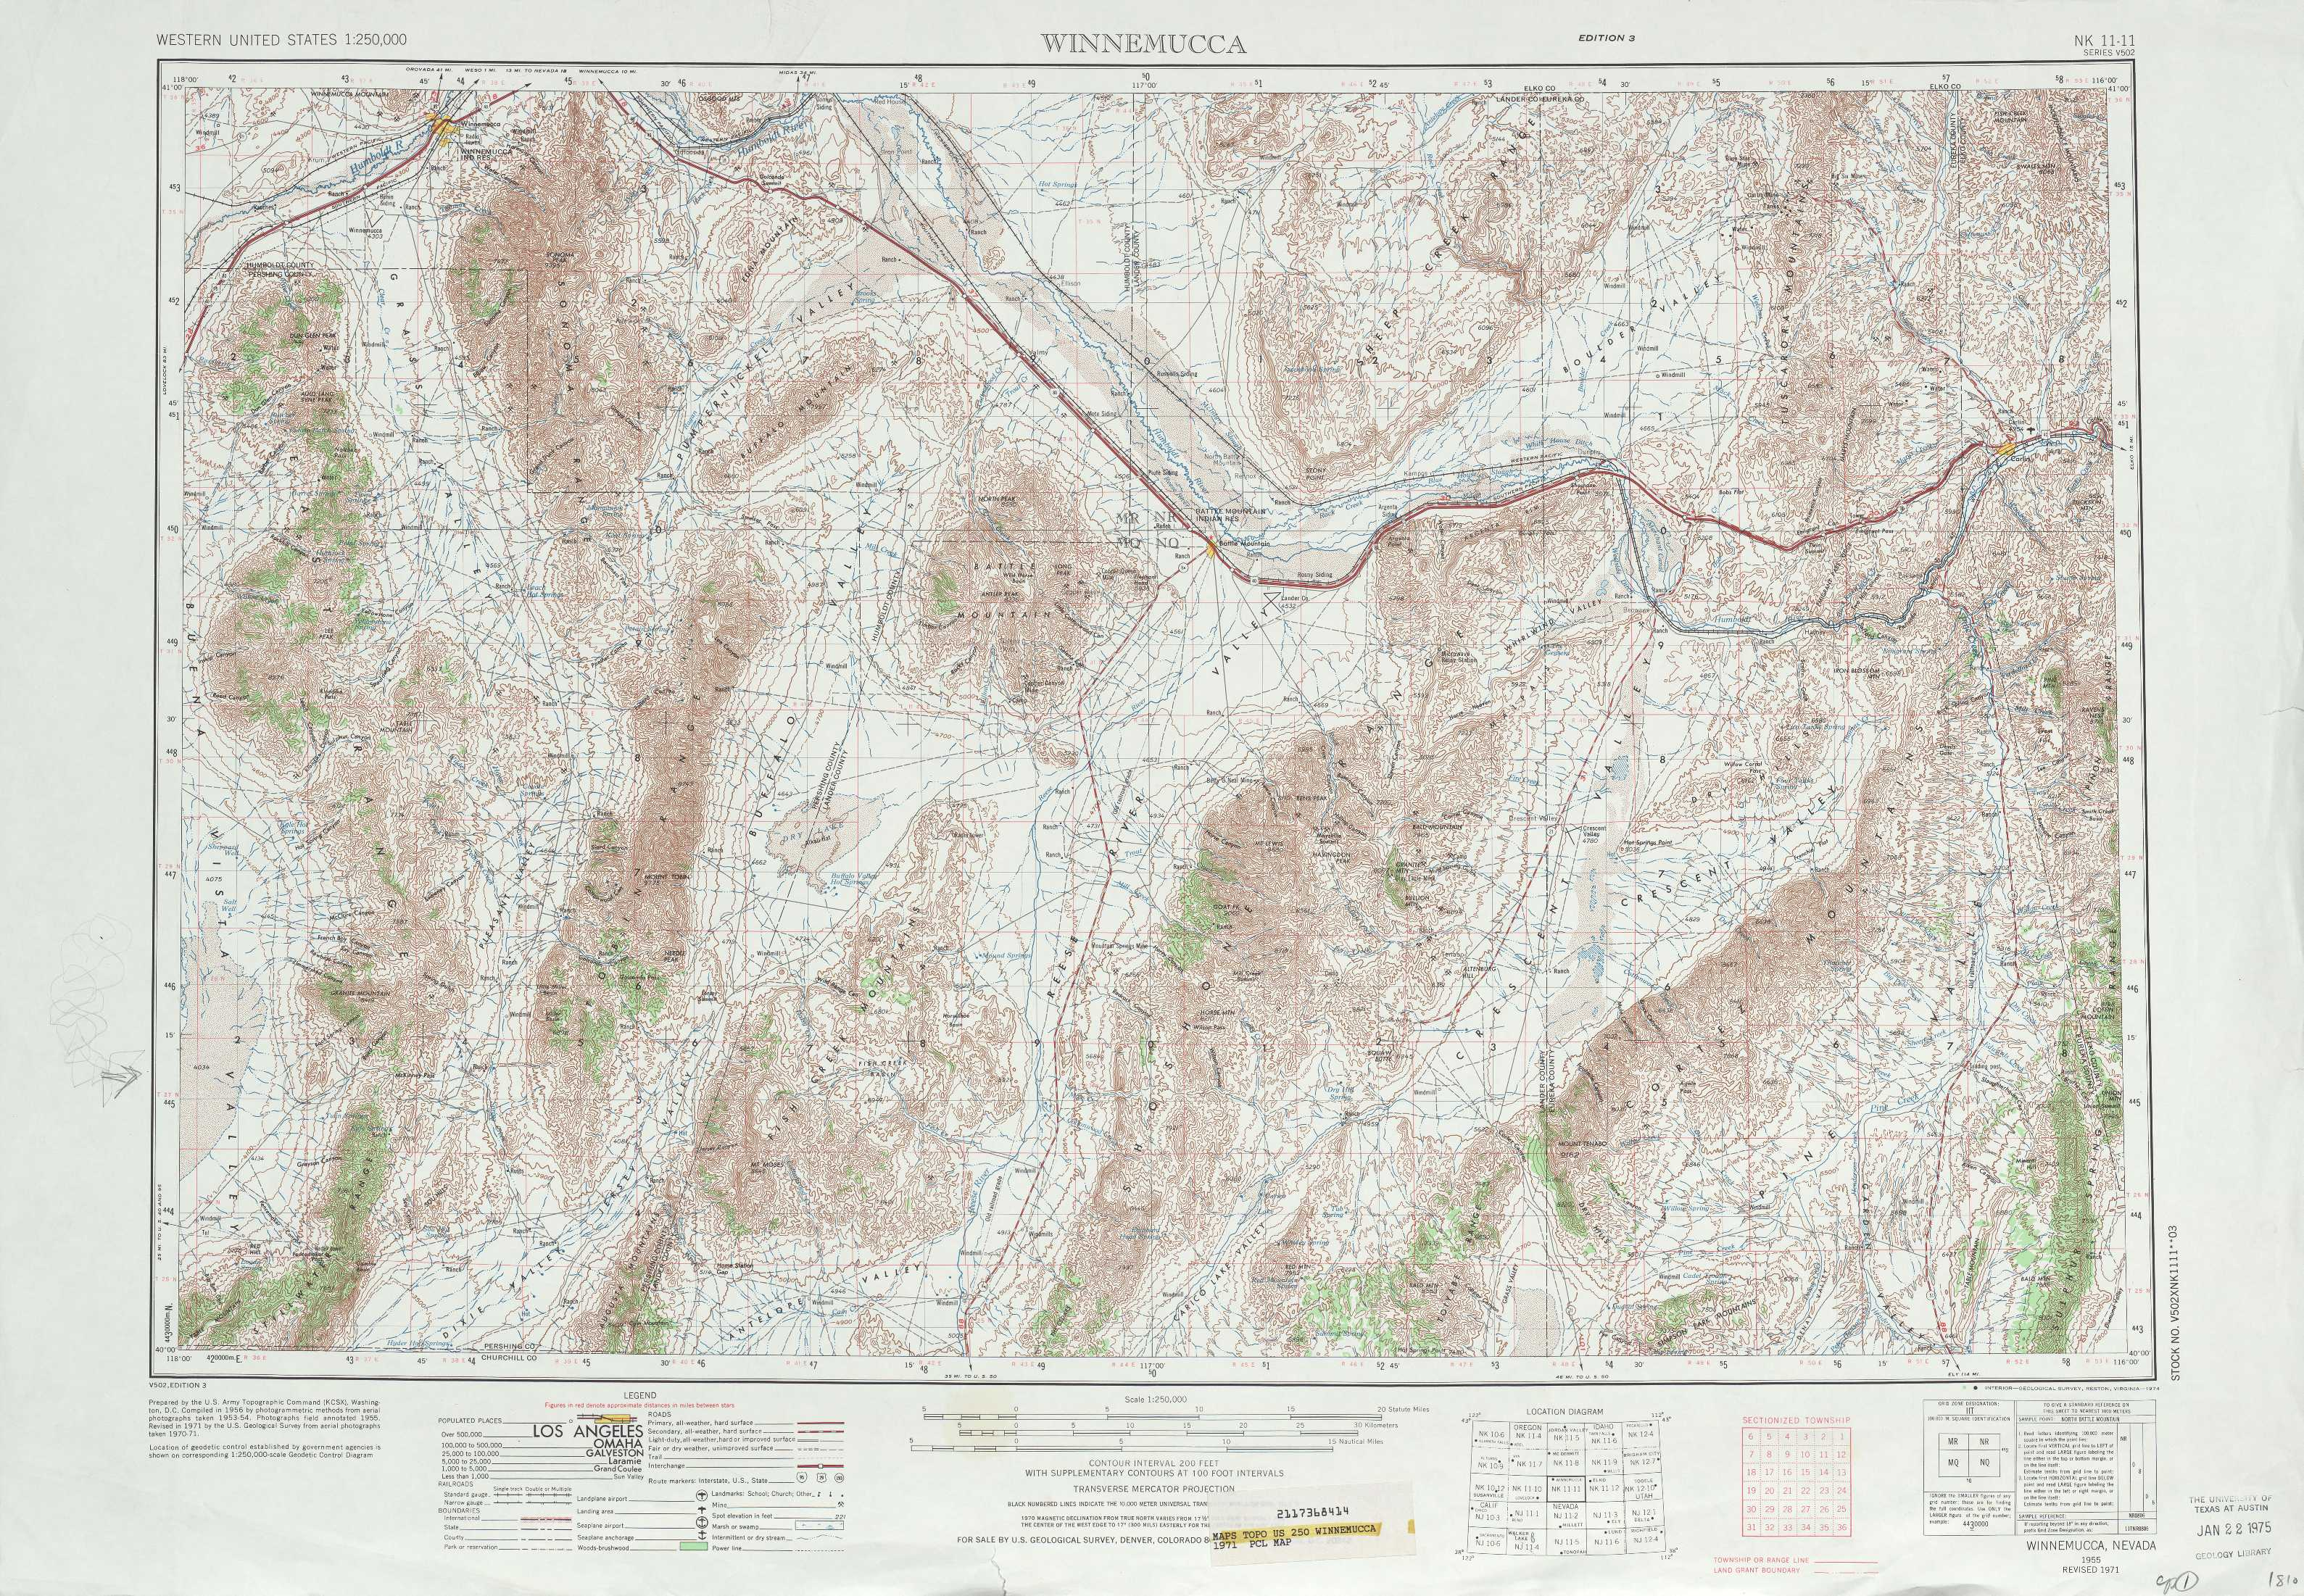 Topographic Map Of Nevada.Winnemucca Topographic Maps Nv Usgs Topo Quad 40116a1 At 1